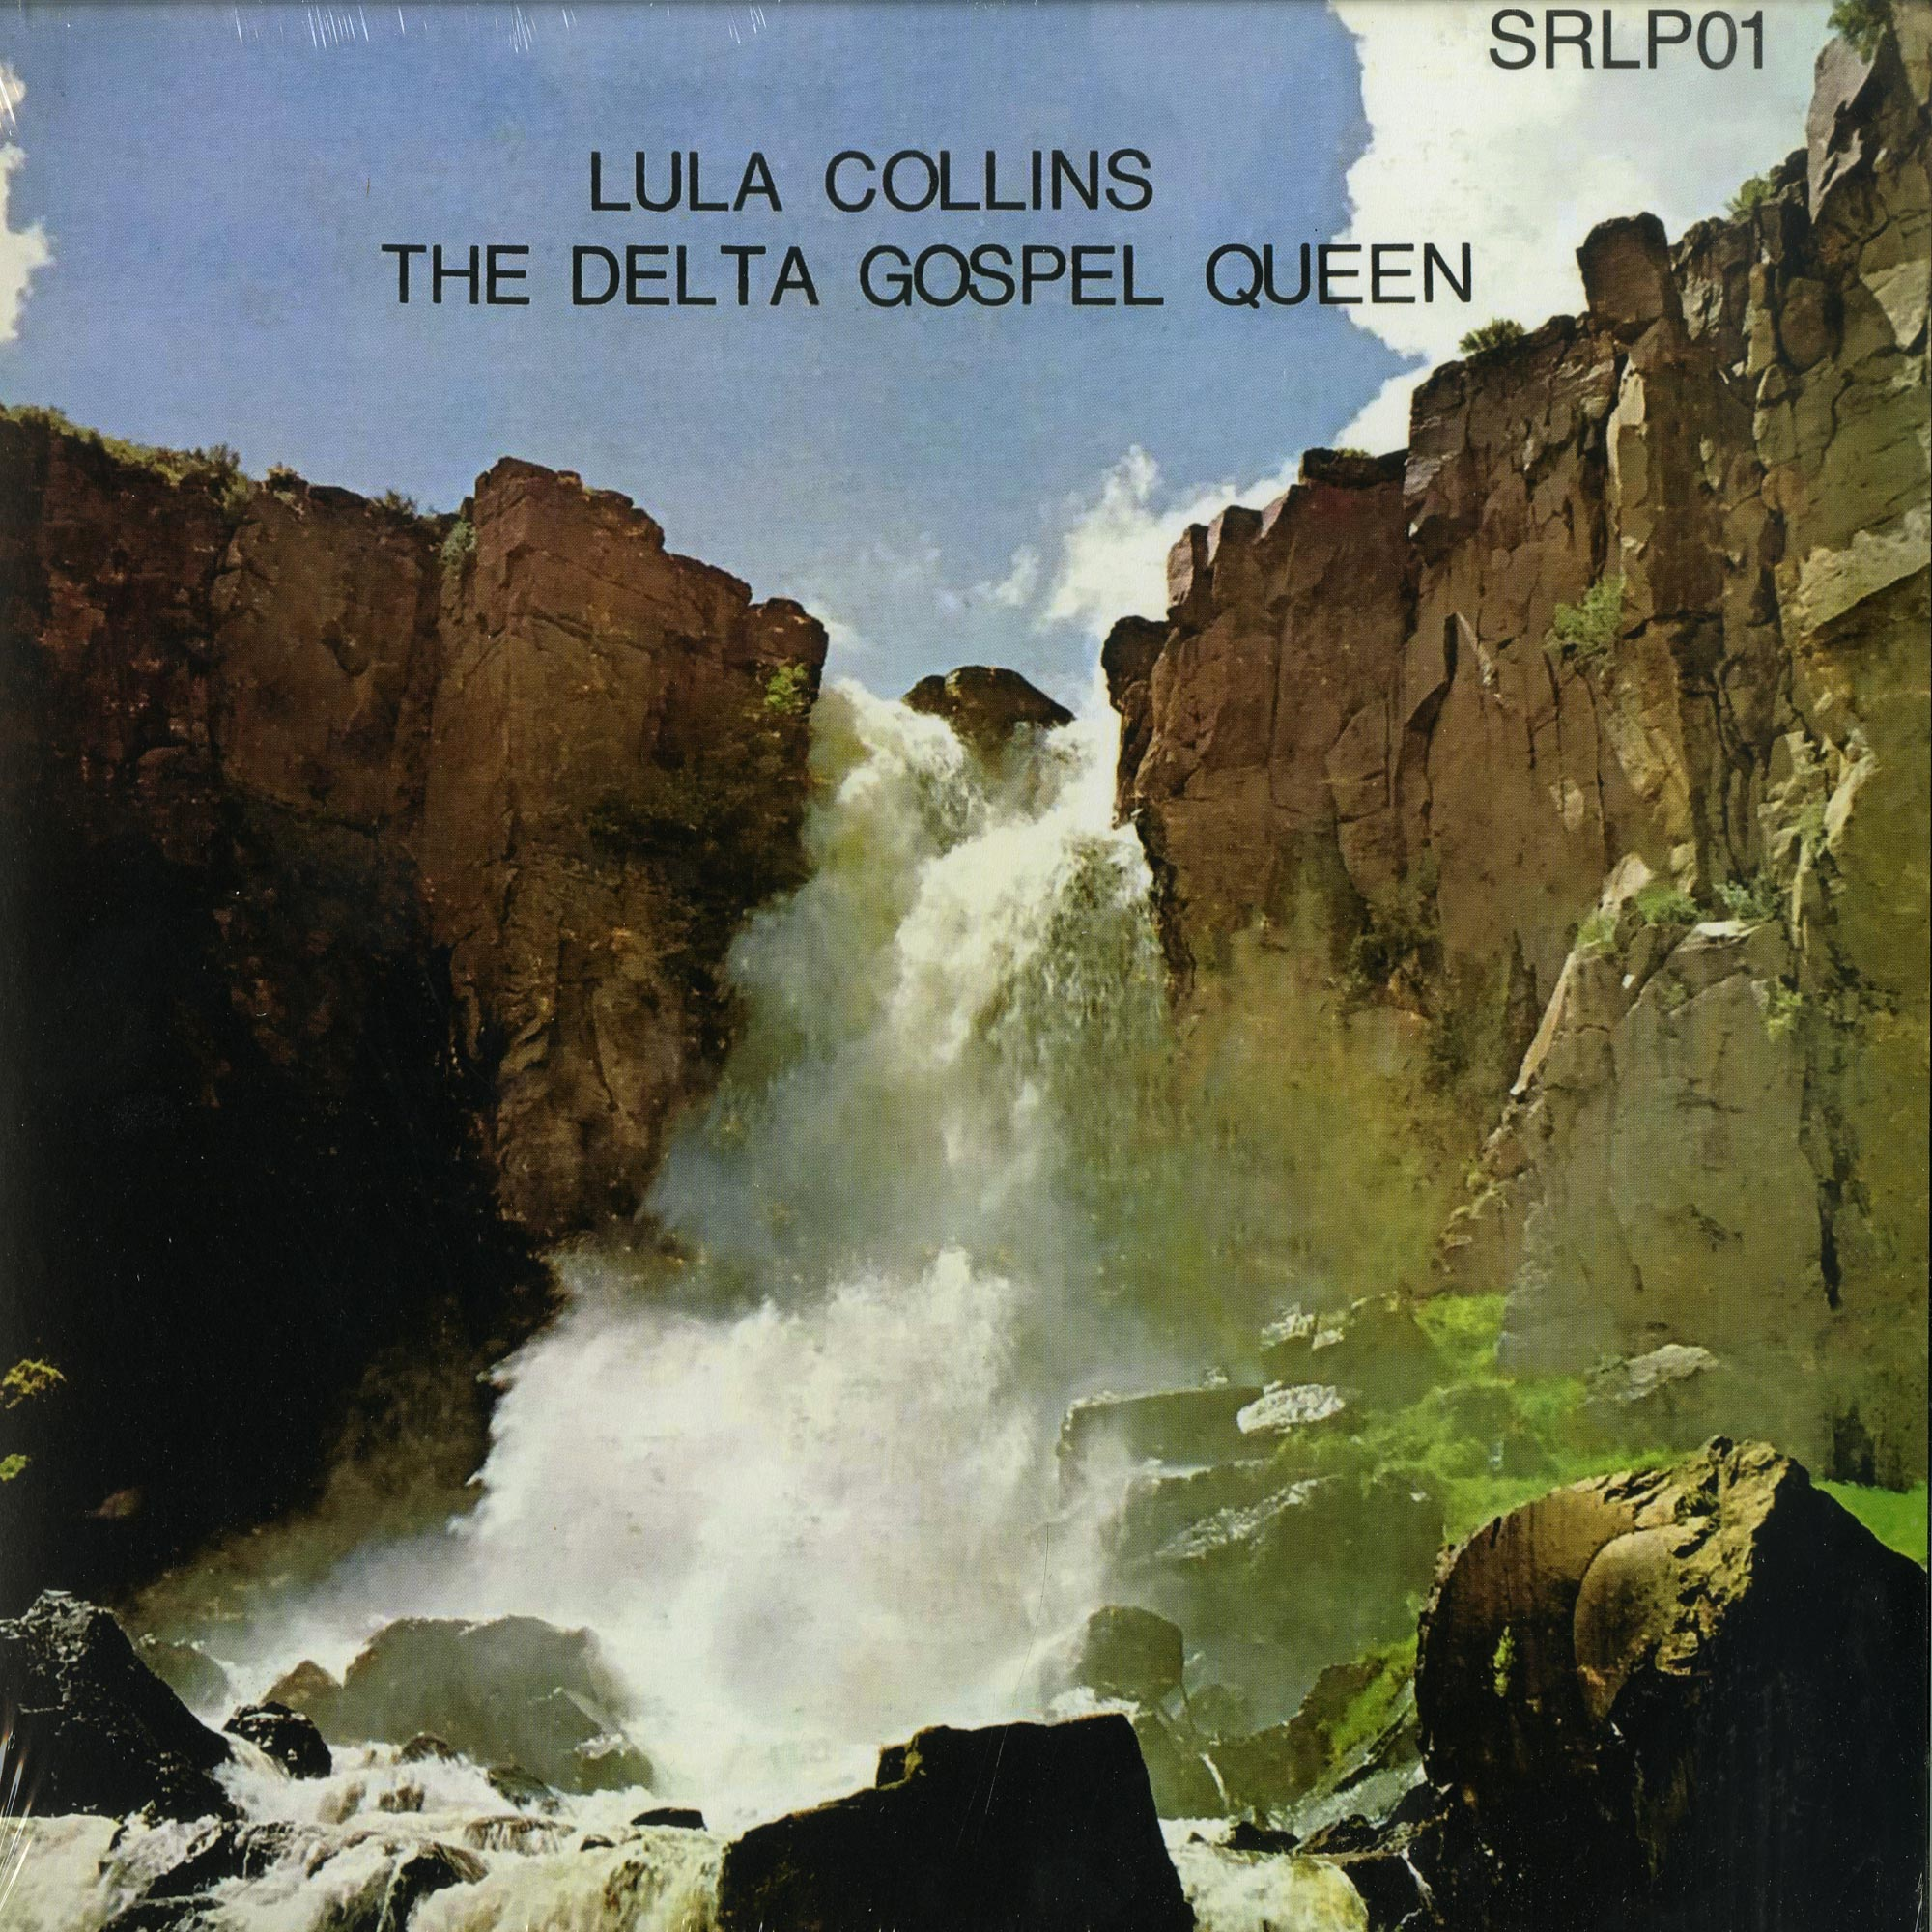 Lula Collins - THE DELTA GOSPEL QUEEN